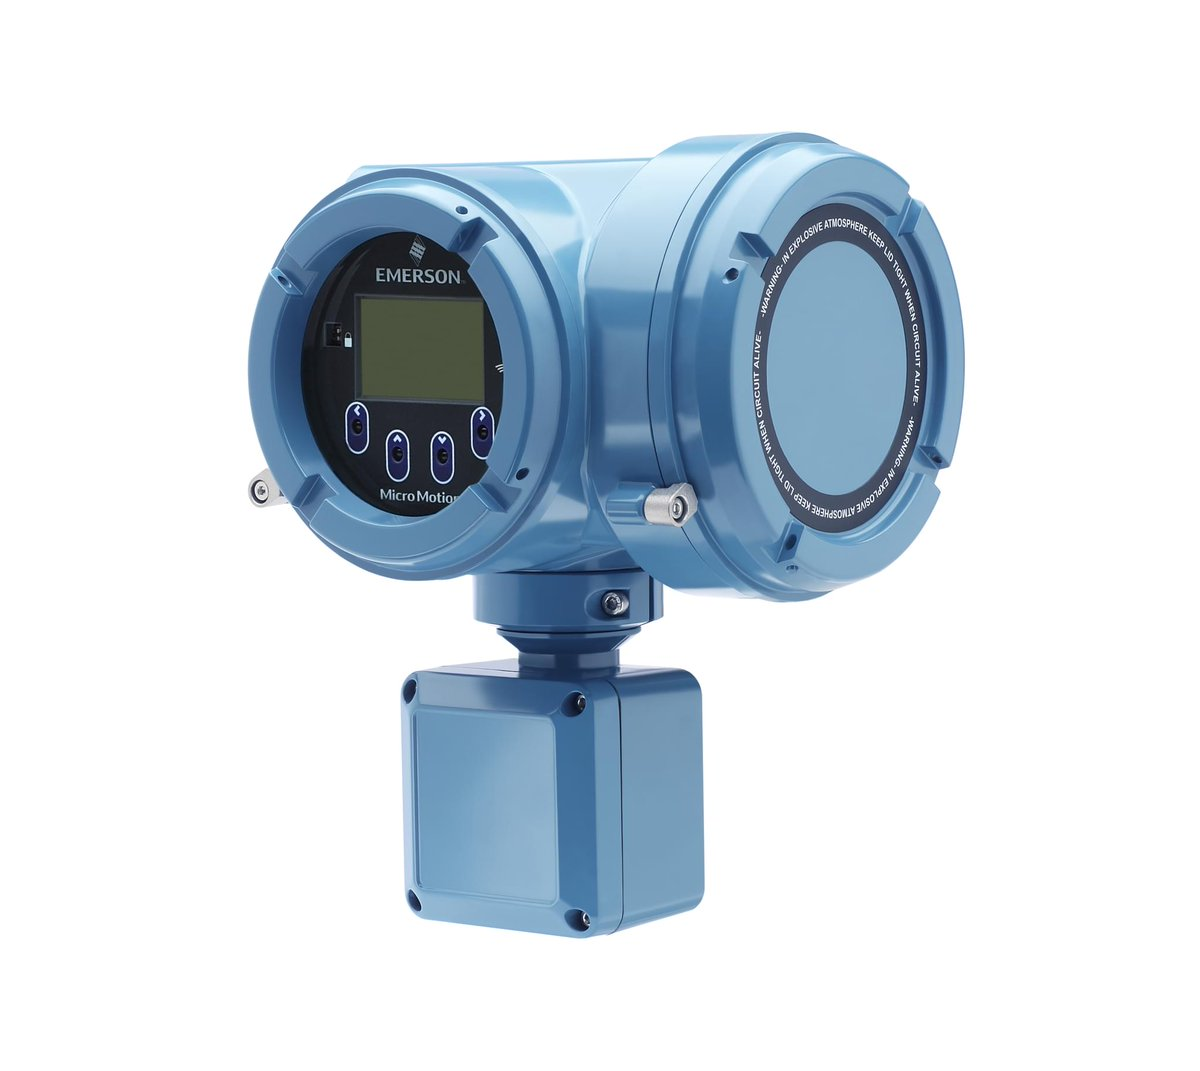 Make sure to vote for the Micro Motion Advance Phase Measurement Multi-Well for the Flow Control Innovation Awards! This software upgrade delivers immediate access to quality data with less required maintenance - all for a fraction of the cost. Vote > https://t.co/cBA8gsFb2H https://t.co/Lou9xclewV